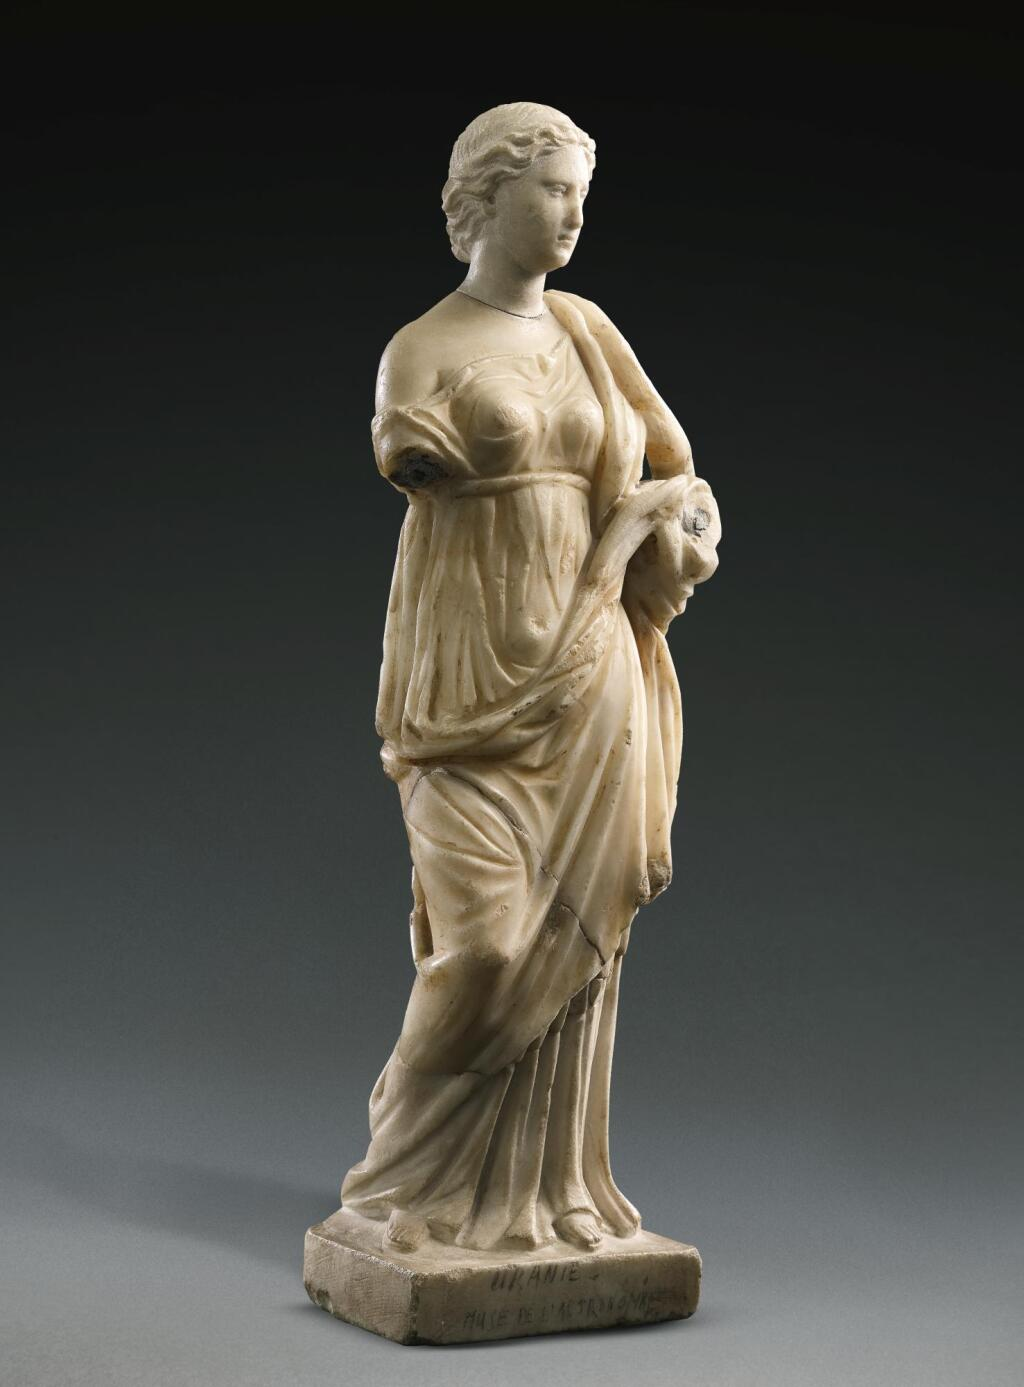 A ROMAN MARBLE FIGURE OF HYGIEIA, CIRCA 2ND CENTURY A.D., WITH 18TH/19TH CENTURY RESTORATIONS